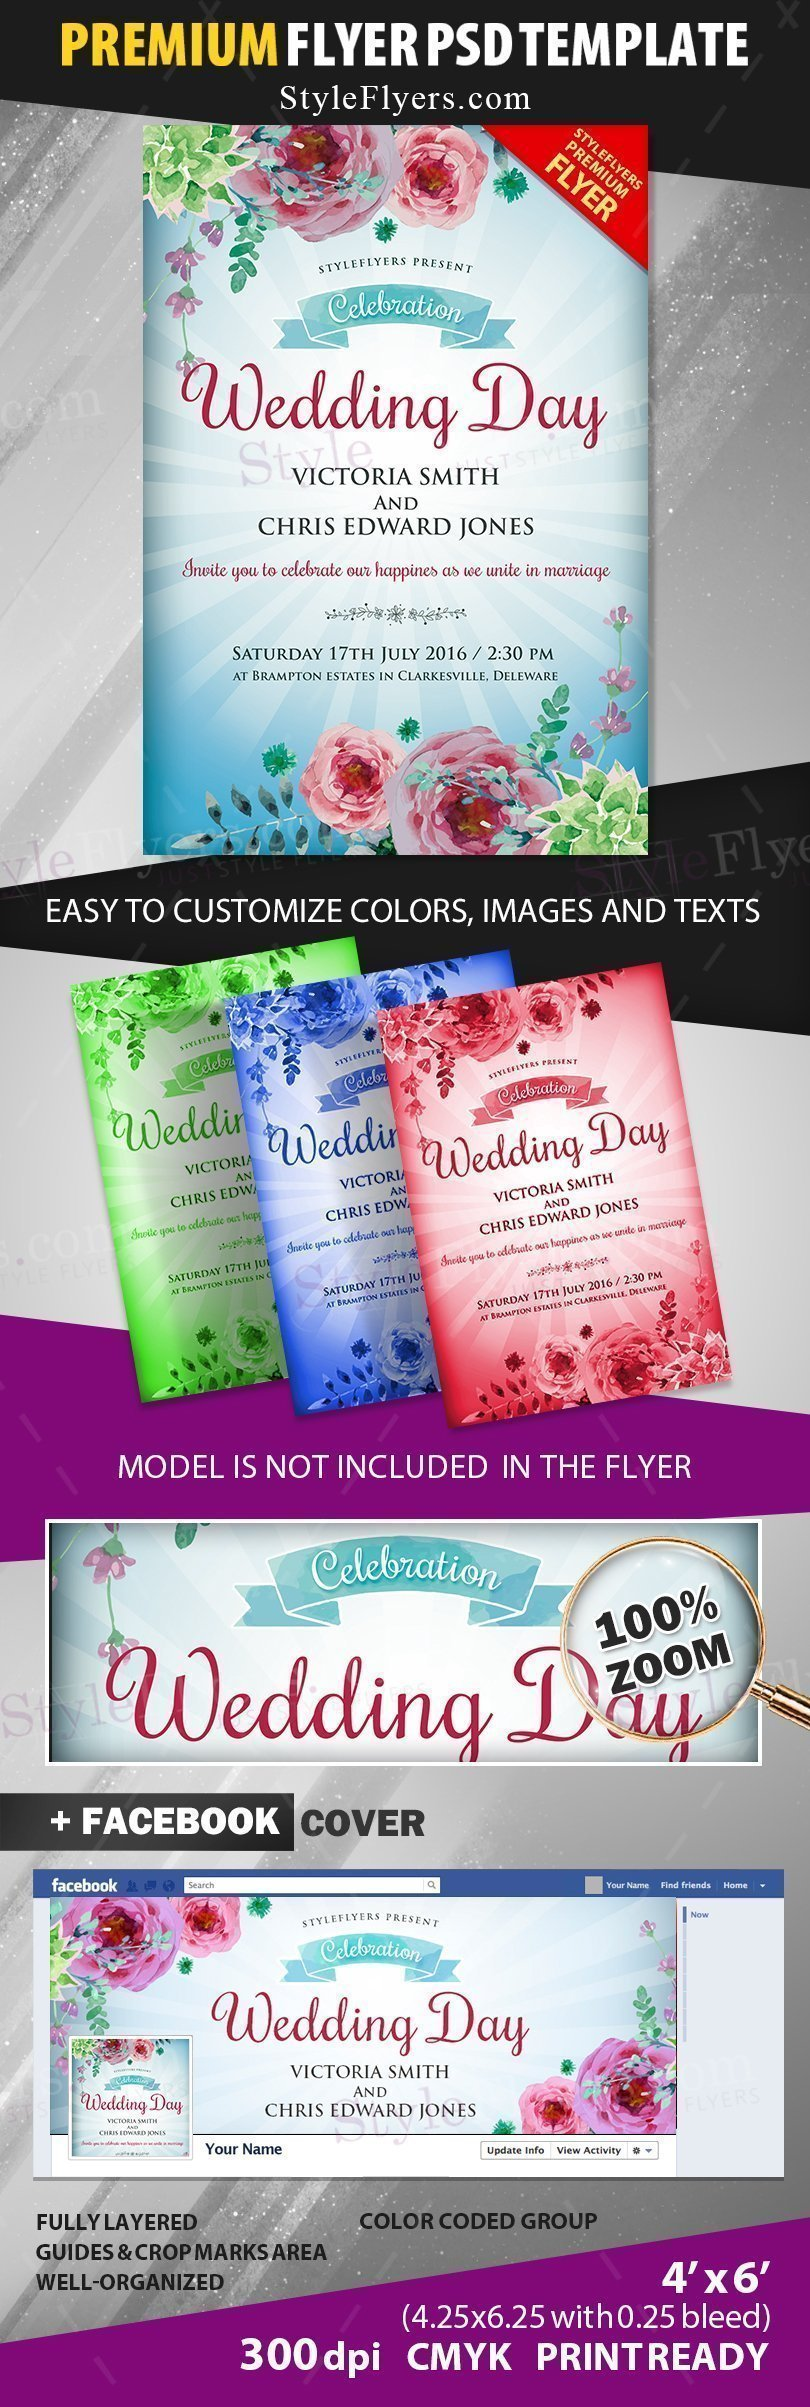 preview_wedding_psd_flyer